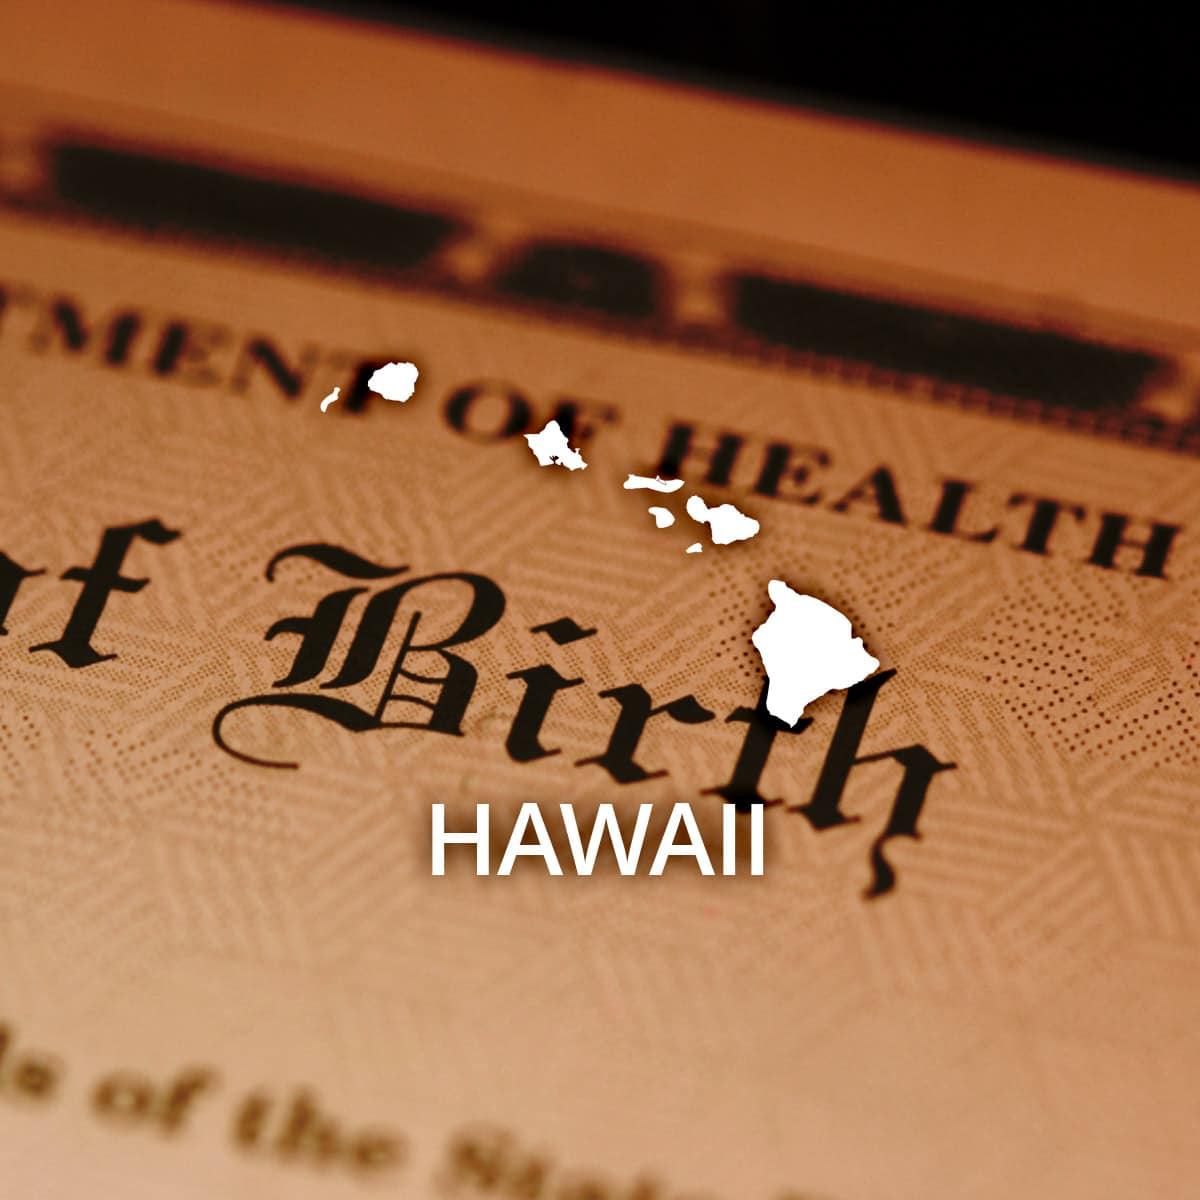 Where to Obtain a Hawaii Birth Certificate